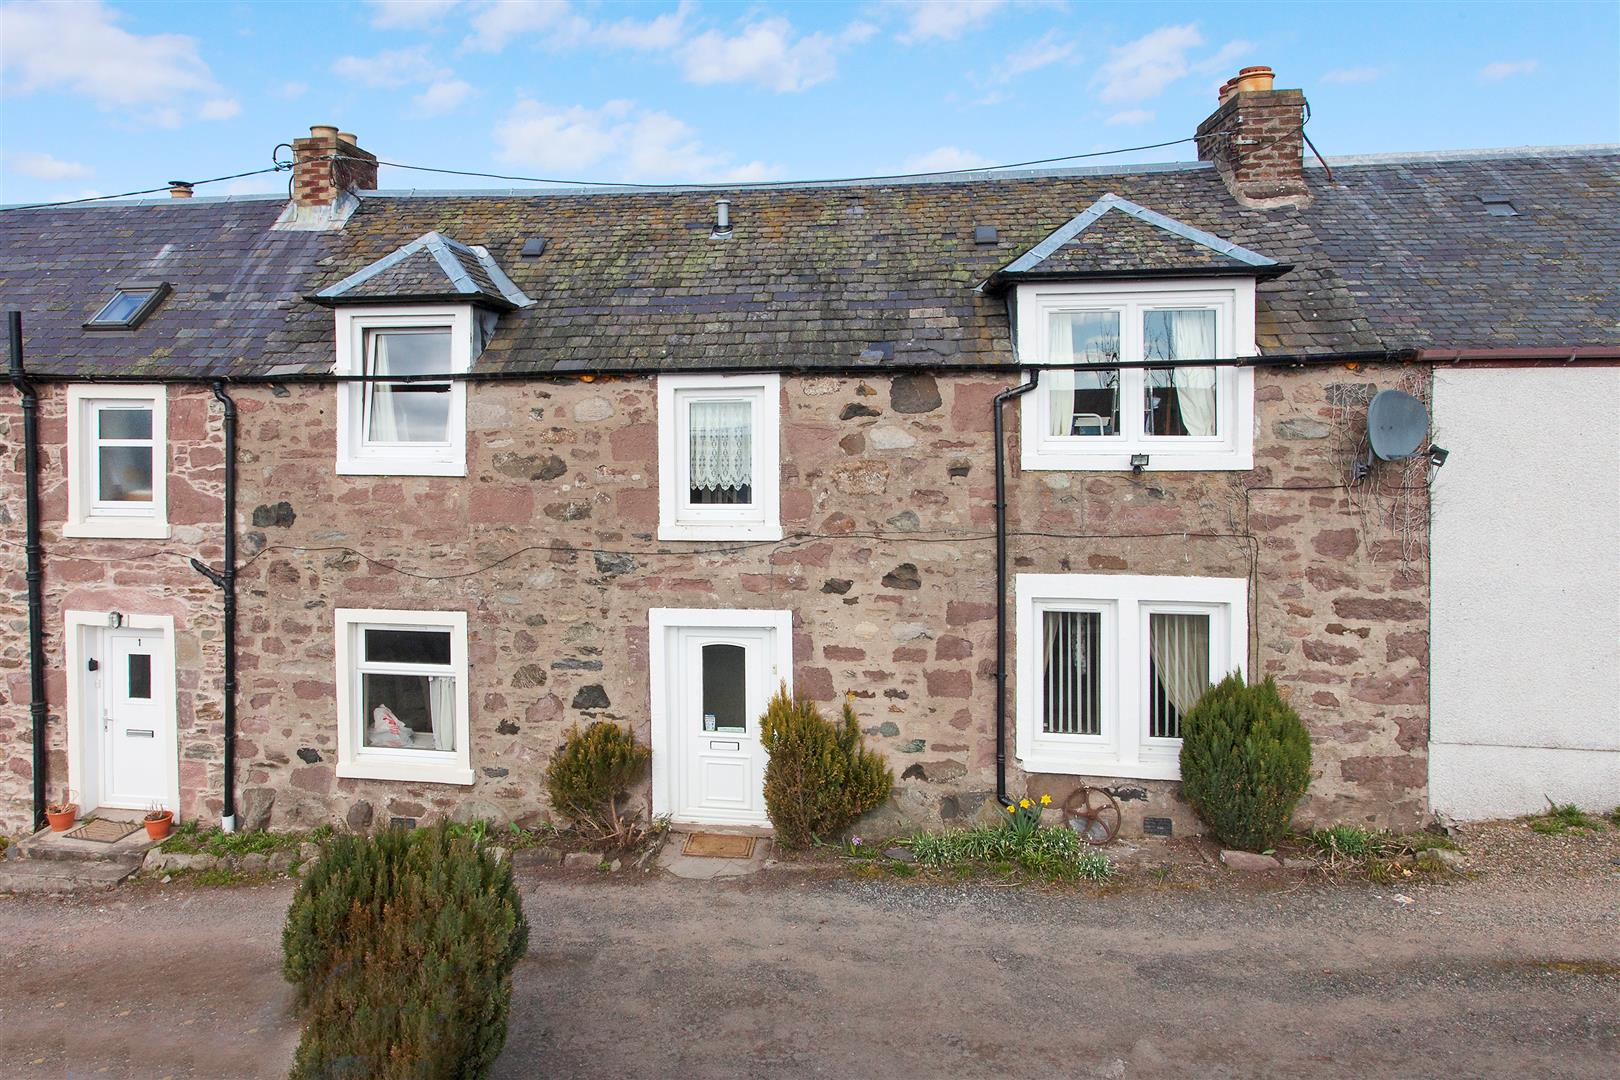 Copper Beeches, Cairneyhill Road, Bankfoot, Perthshire, PH1 4AG, UK